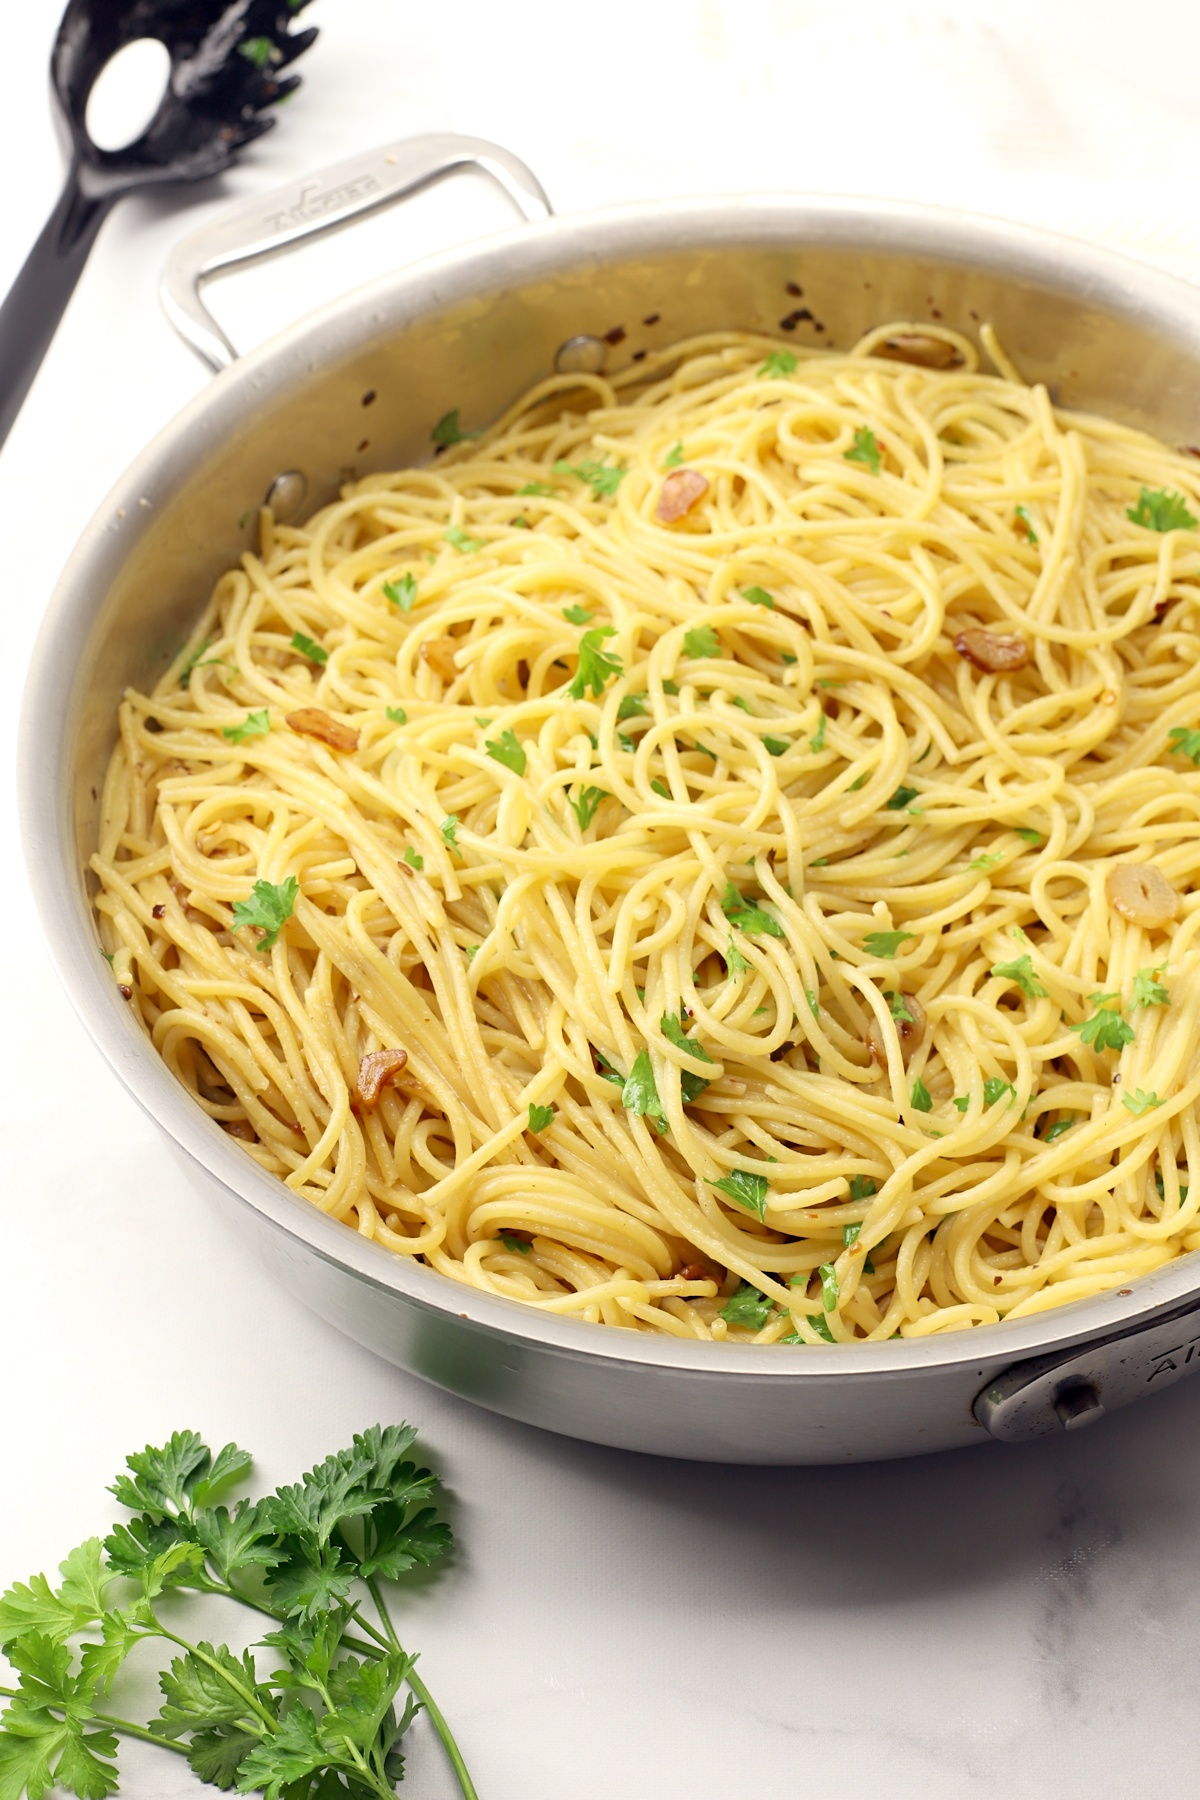 Spaghetti topped with sauteed garlic and chopped parsley.